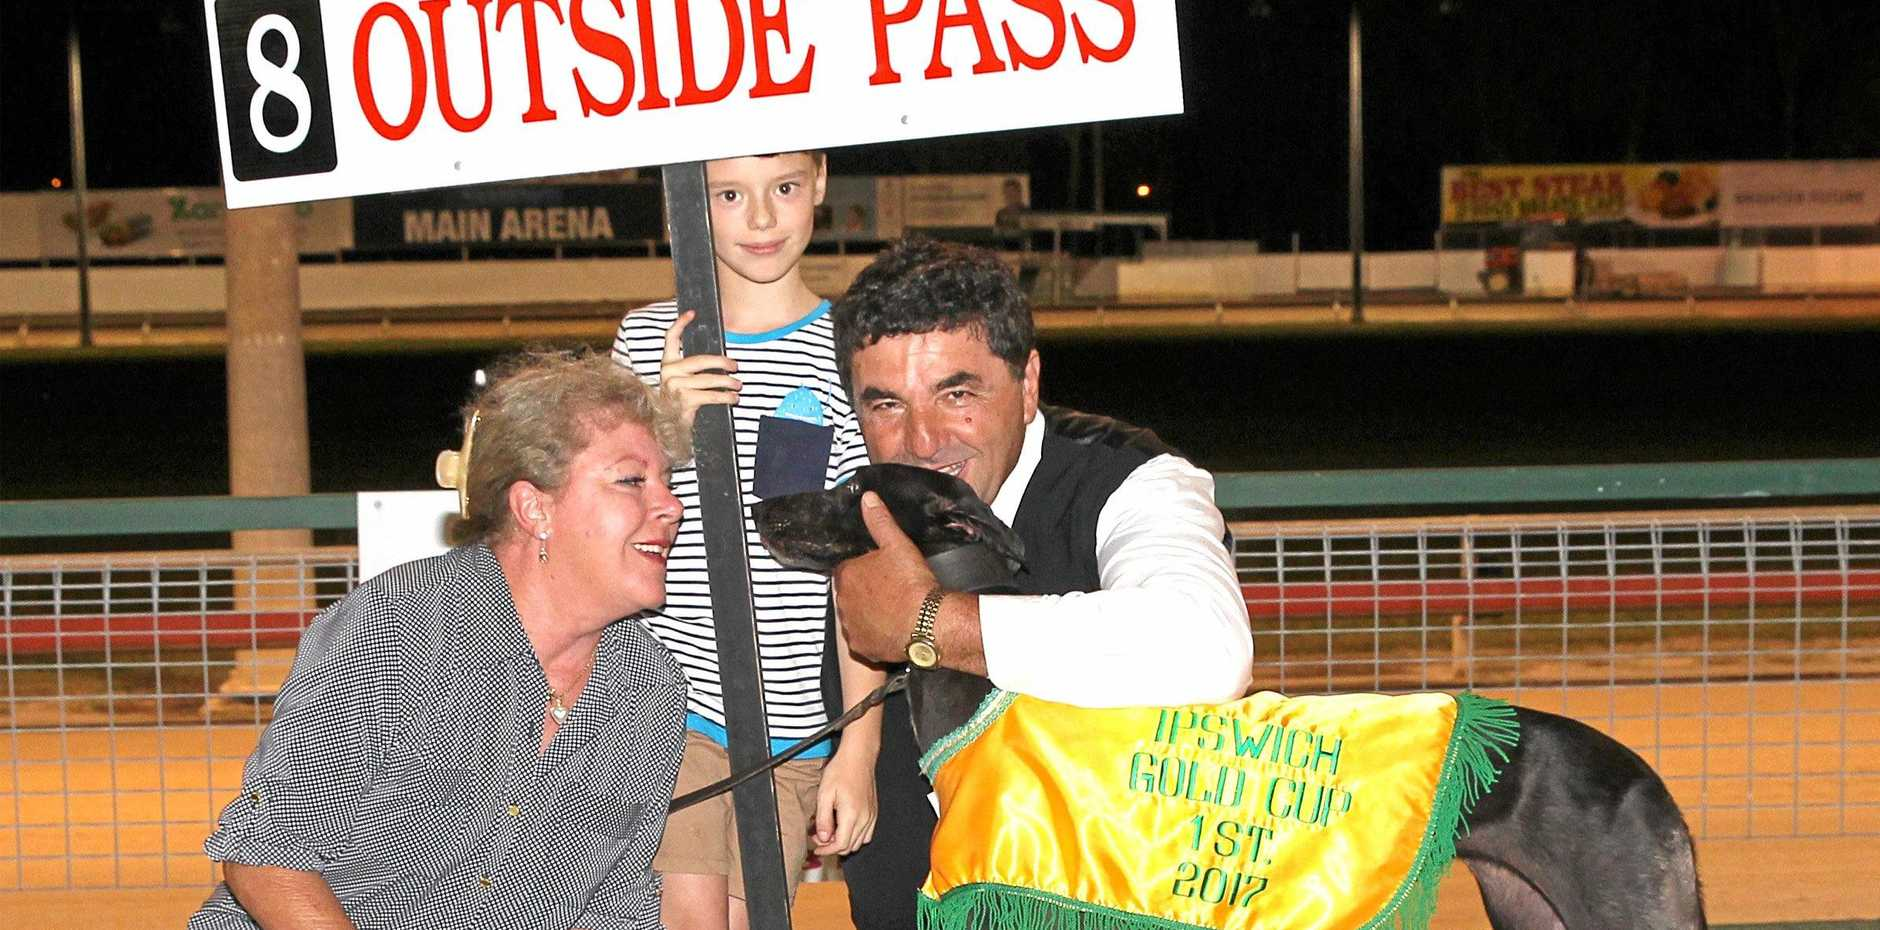 2017 City of Ipswich Gold Cup winner Outside Pass with trainer Tony Apap and his wife Jane.